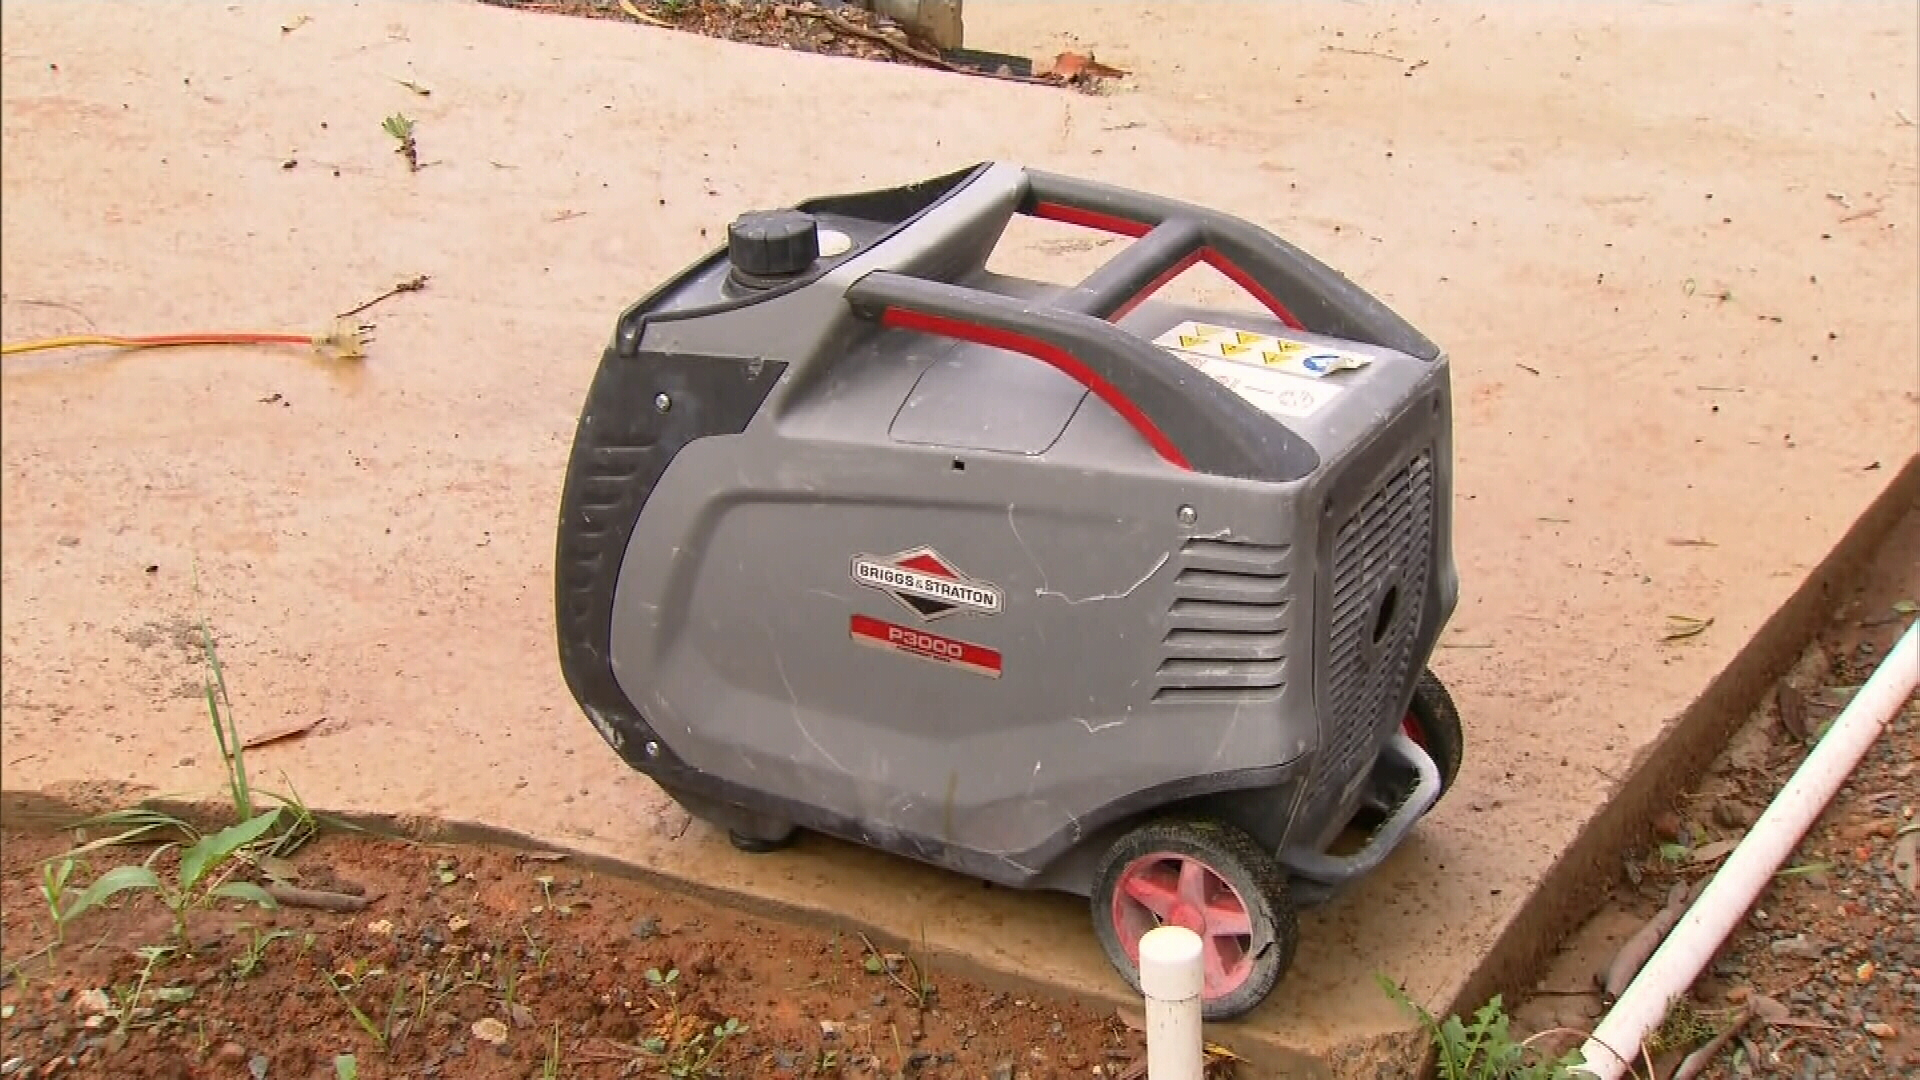 They were running a generator inside the home after their electricity went out during a storm.